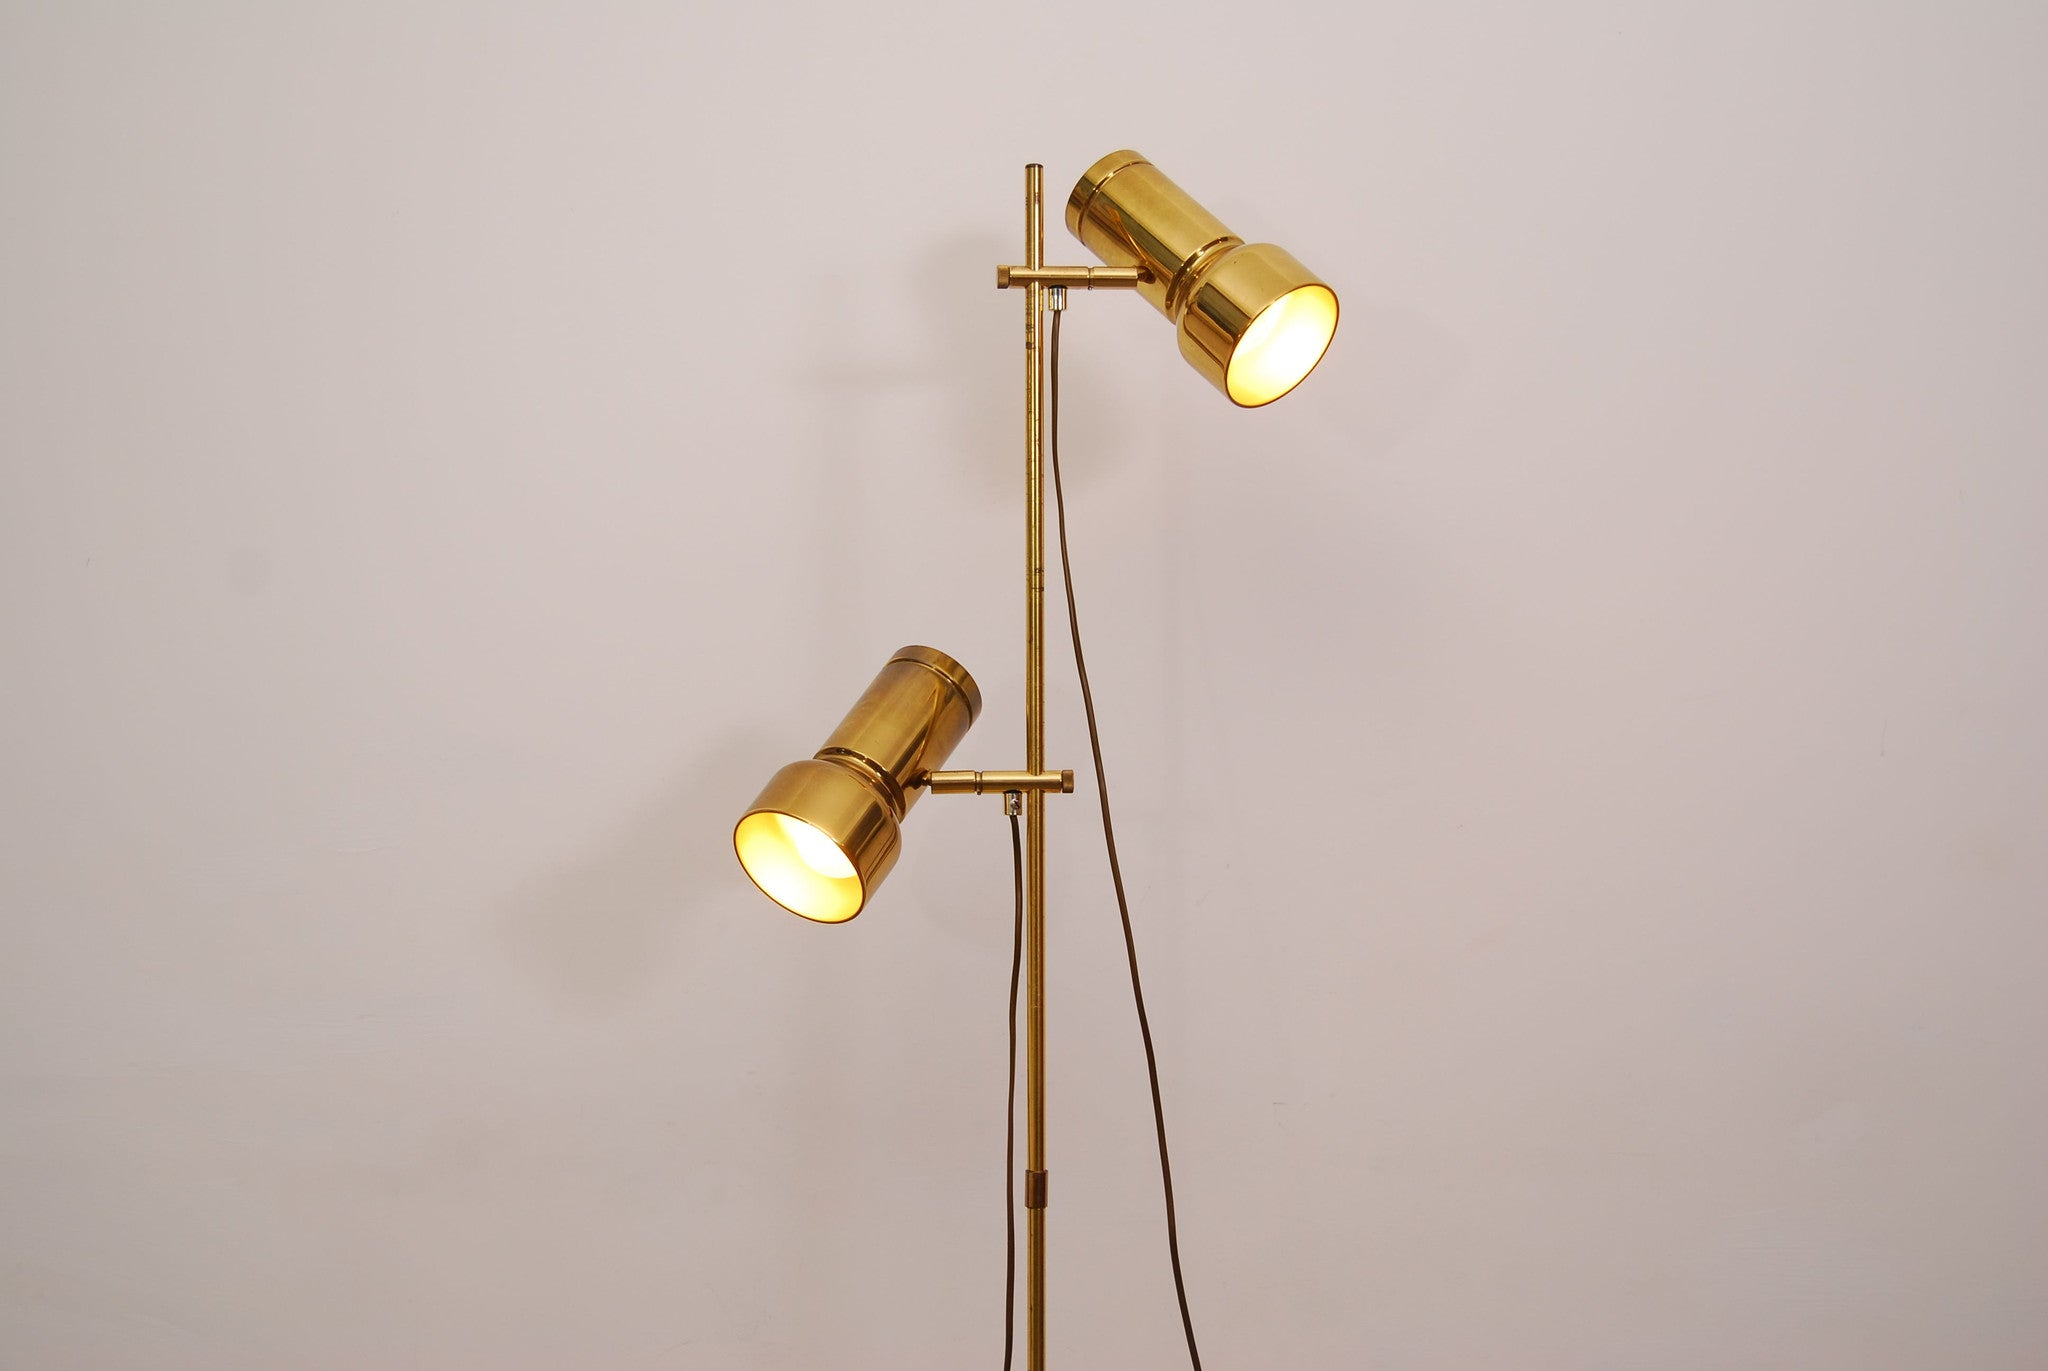 Twin-headed brass floor lamp